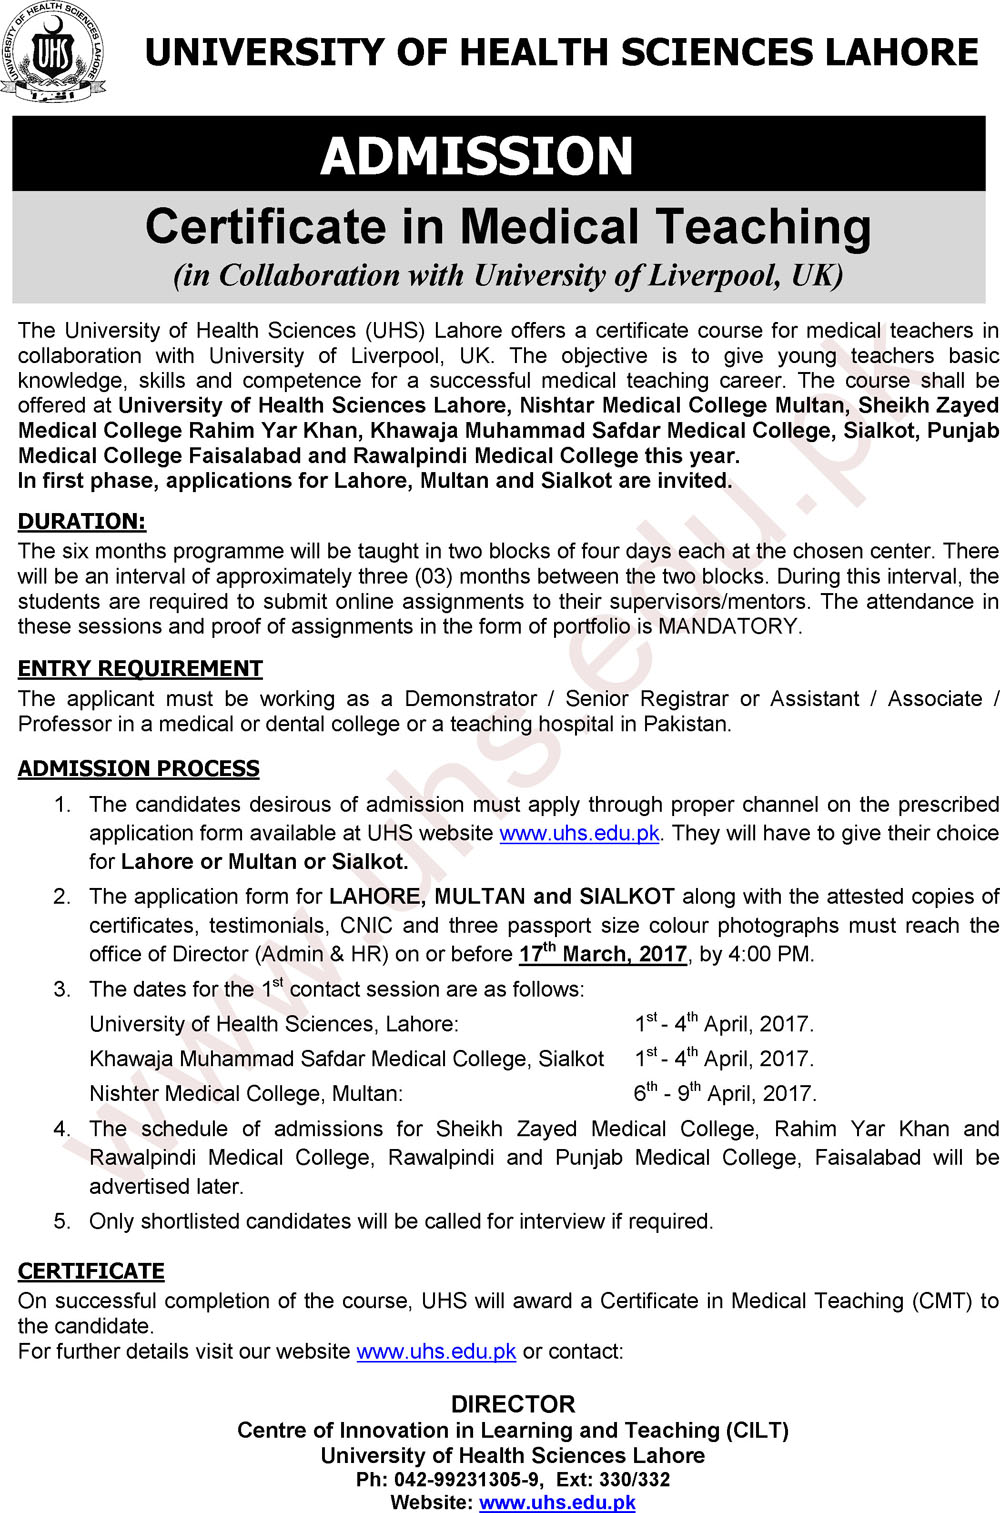 UHS Lahore Certificate in Medical Teaching Admission